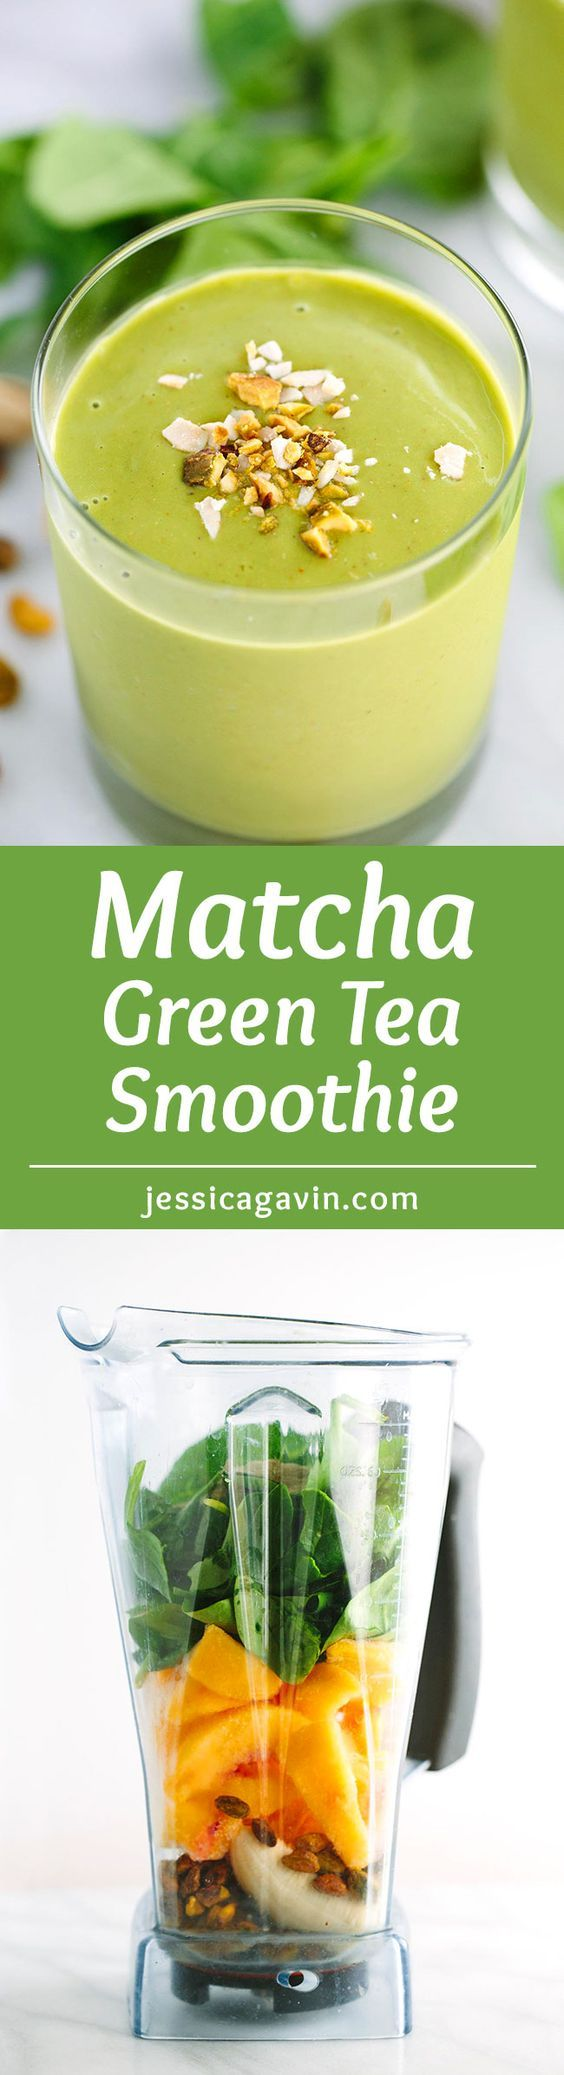 Energizing Matcha Green Tea Smoothie with Peaches - A creamy refreshing, healthy smoothie made under 5 minutes. Packed with peaches, bananas, spinach, and pistachios. | jessicagavin.com